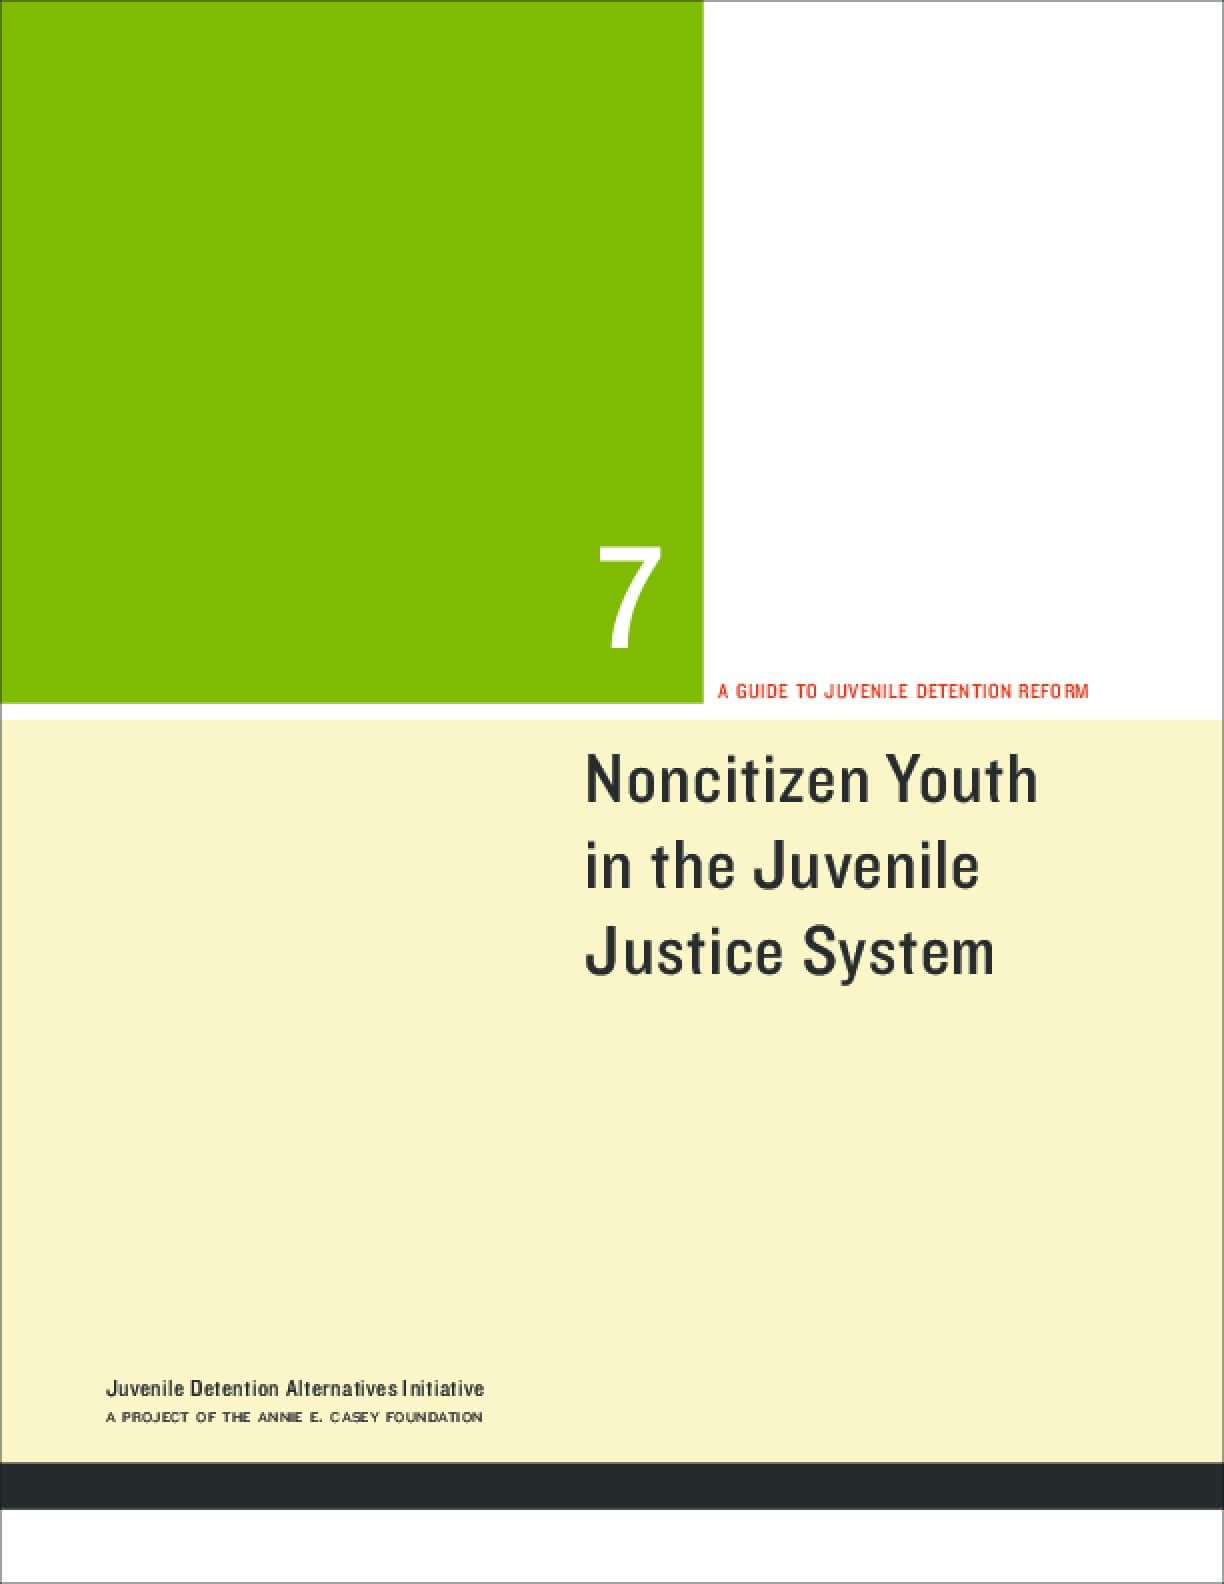 Noncitizen Youth in the Juvenile Justice System: A guide to juvenile detention reform